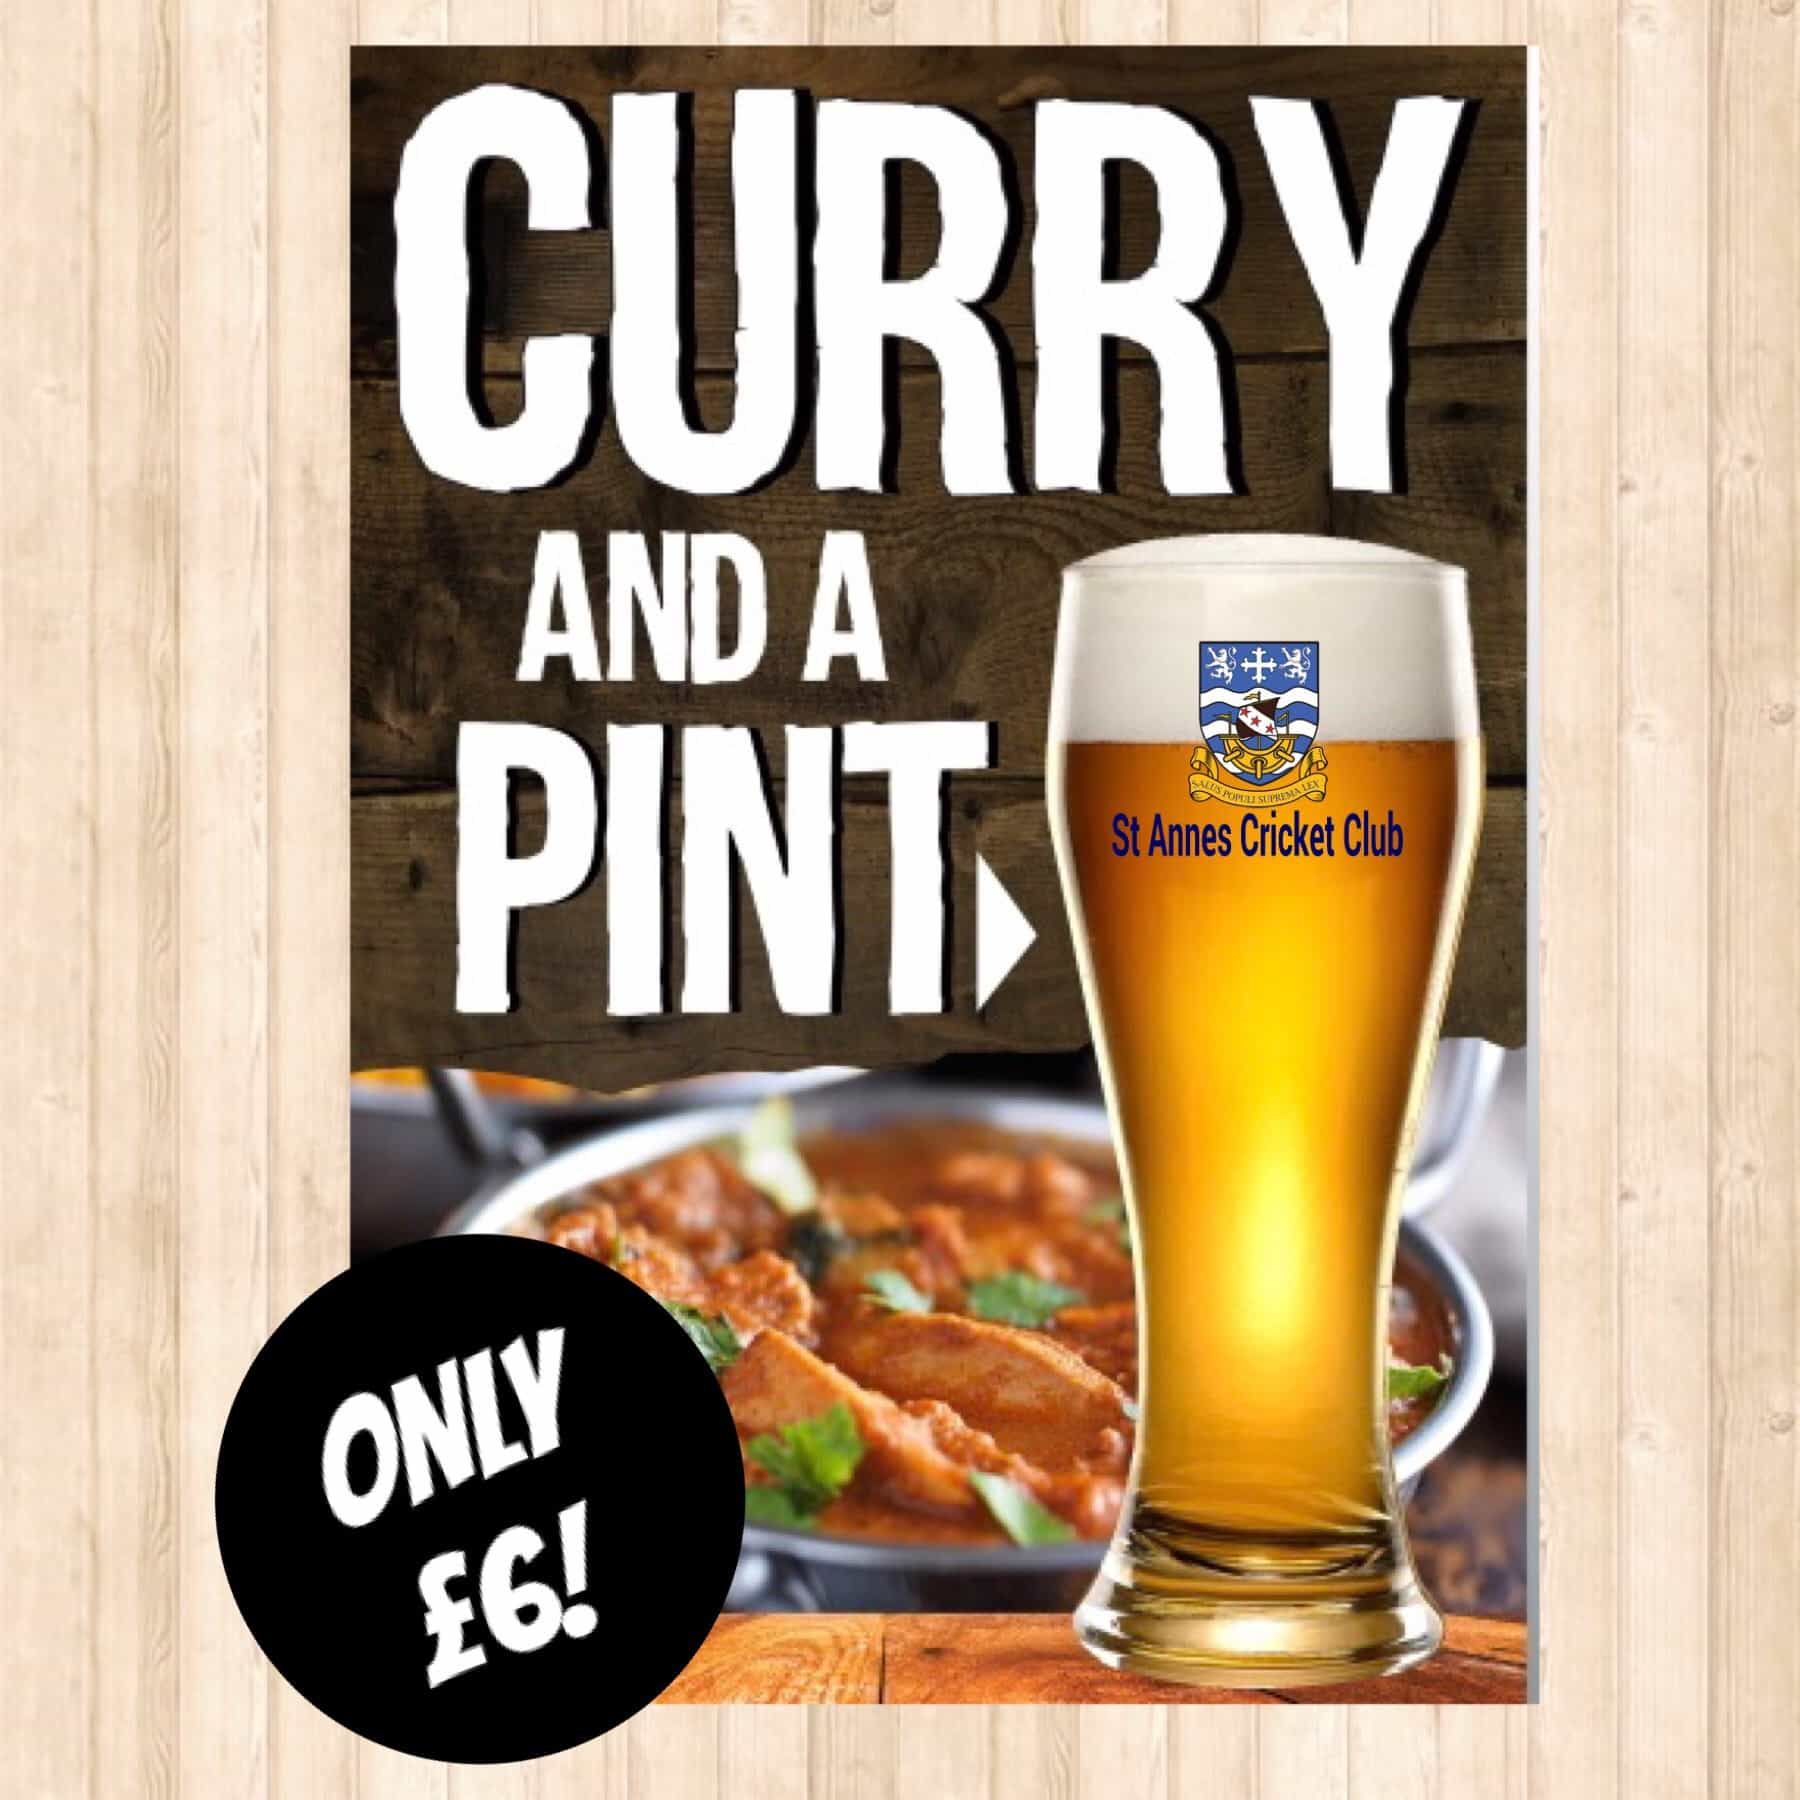 Curry & a pint £6 food & drink offer at St Annes CC